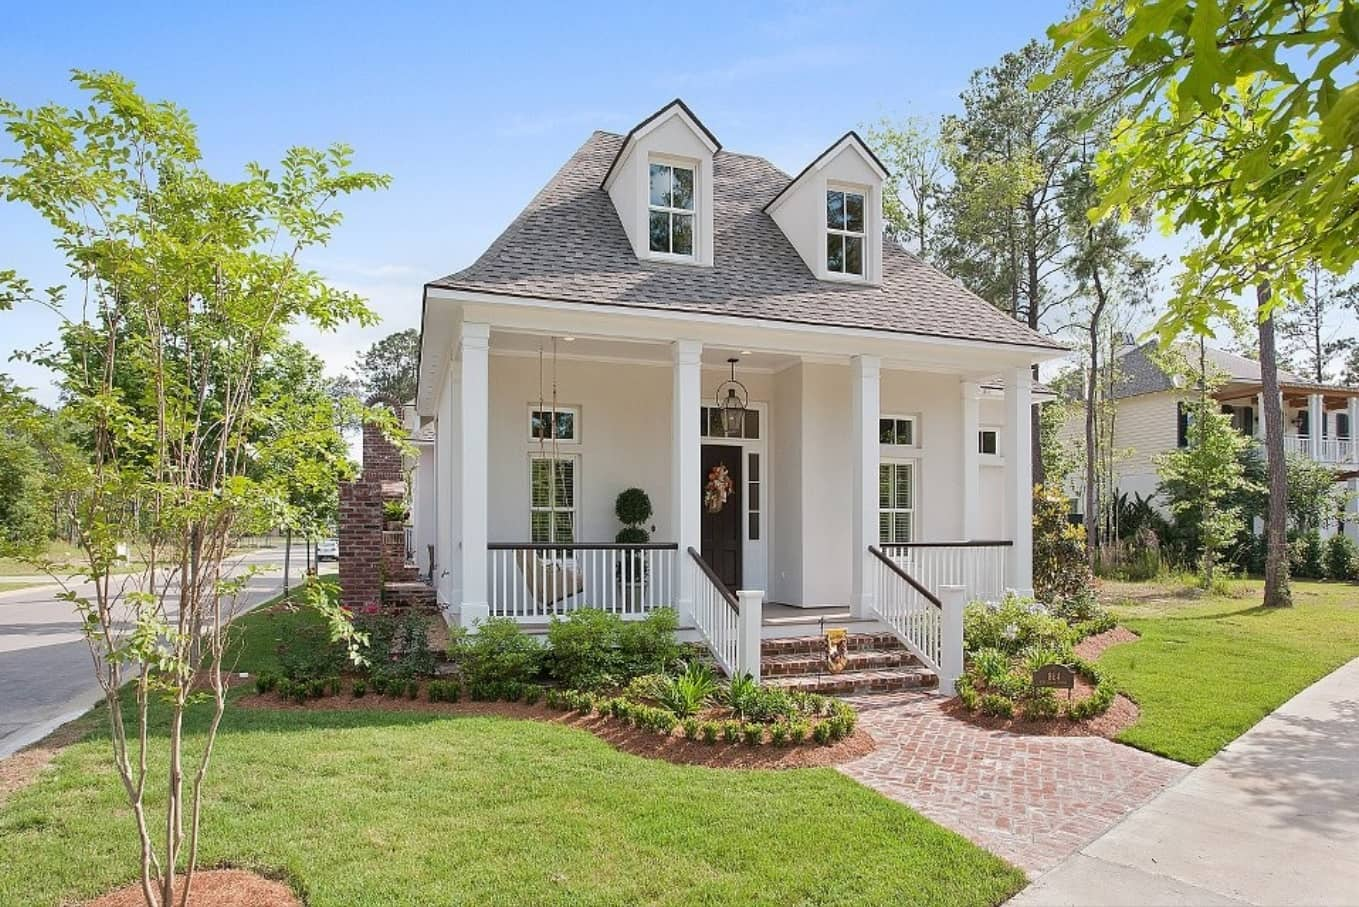 Acadian Style Home Design: Description, Floor Plans and Tips. Mid sized house in white with gray steep roof masterfully inscribedinto urban landscape